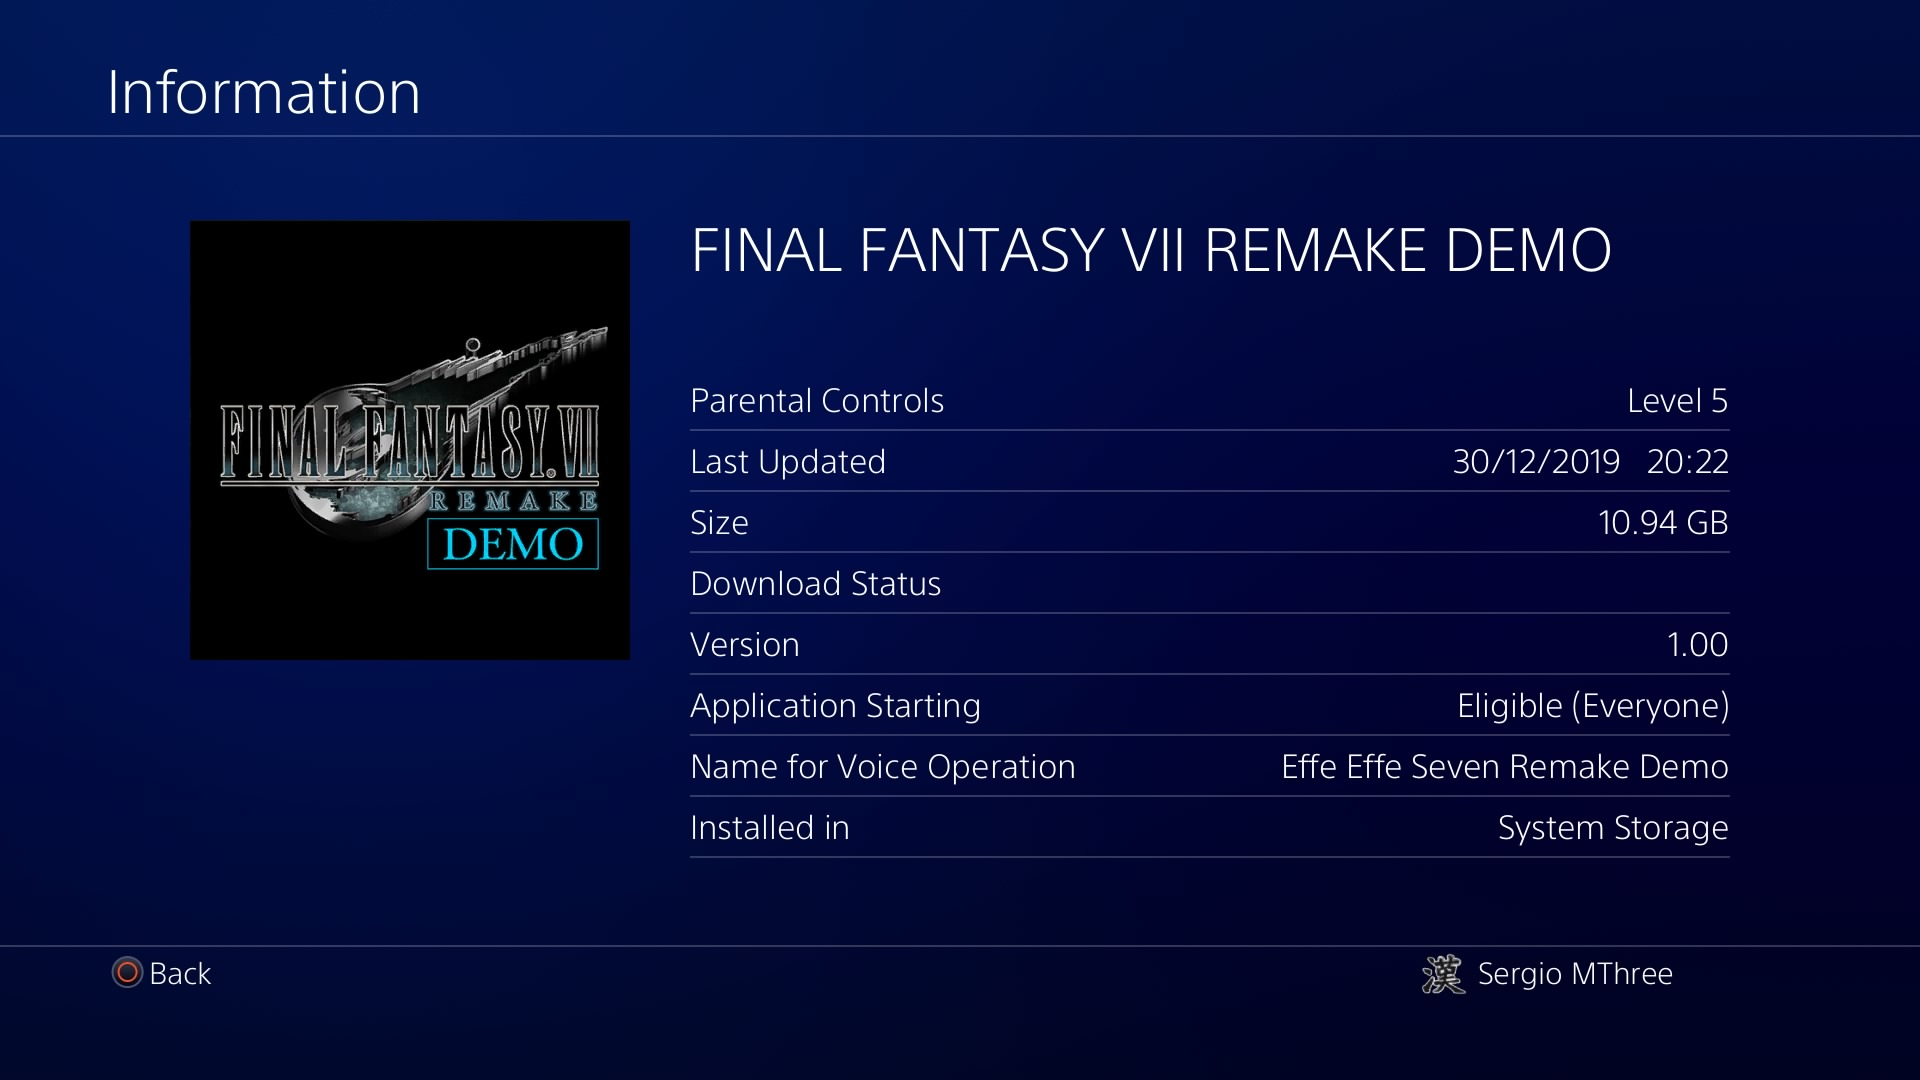 Final Fantasy 7 Remake Demo, Final Fantasy 7 Remake PS4 Demo Leaked, Worth About an Hour of Gameplay, Gadget Pilipinas, Gadget Pilipinas